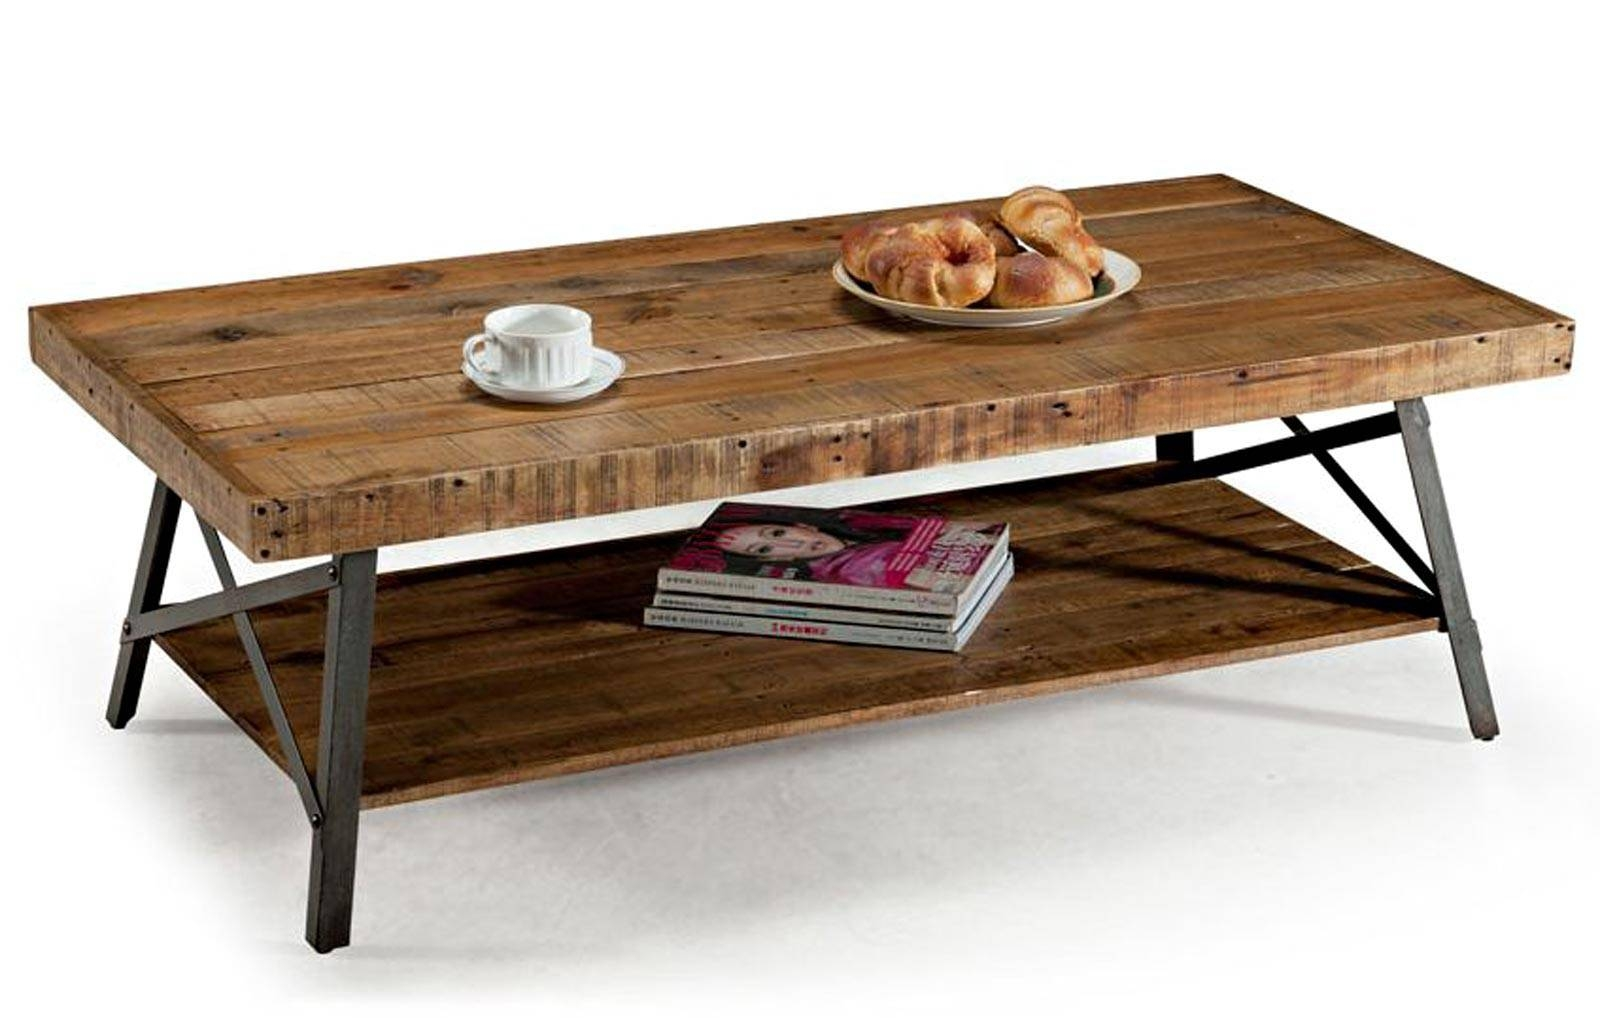 Rustic Coffee Tables As One Of The Best Furniture | Home Furniture with Antique Rustic Coffee Tables (Image 27 of 30)